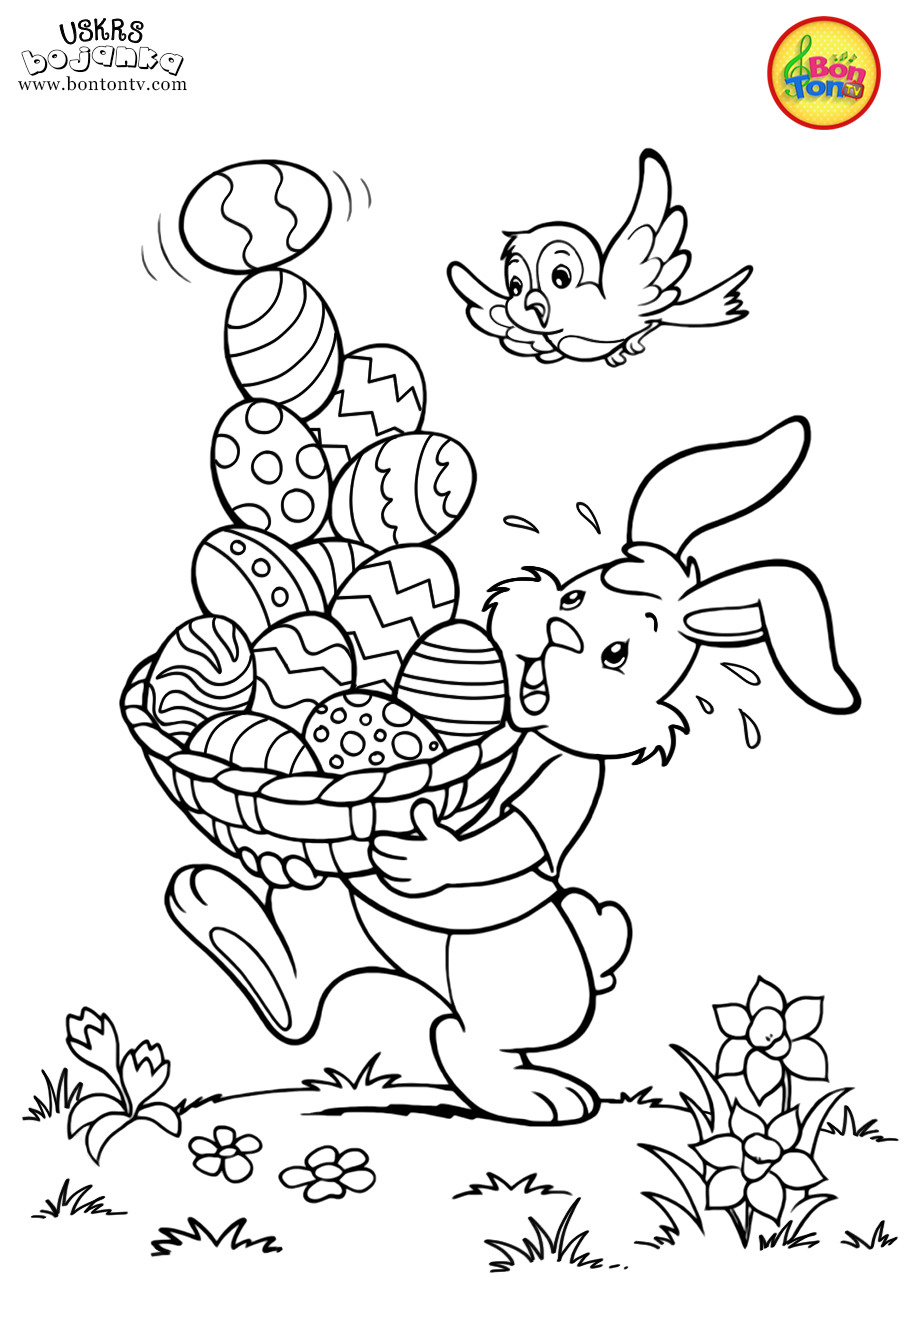 Easter Coloring Pages Uskrs Bojanke Za Djecu Free Printables Easter Bunny Eggs Chicks A Easter Coloring Pages Easter Coloring Sheets Cute Coloring Pages